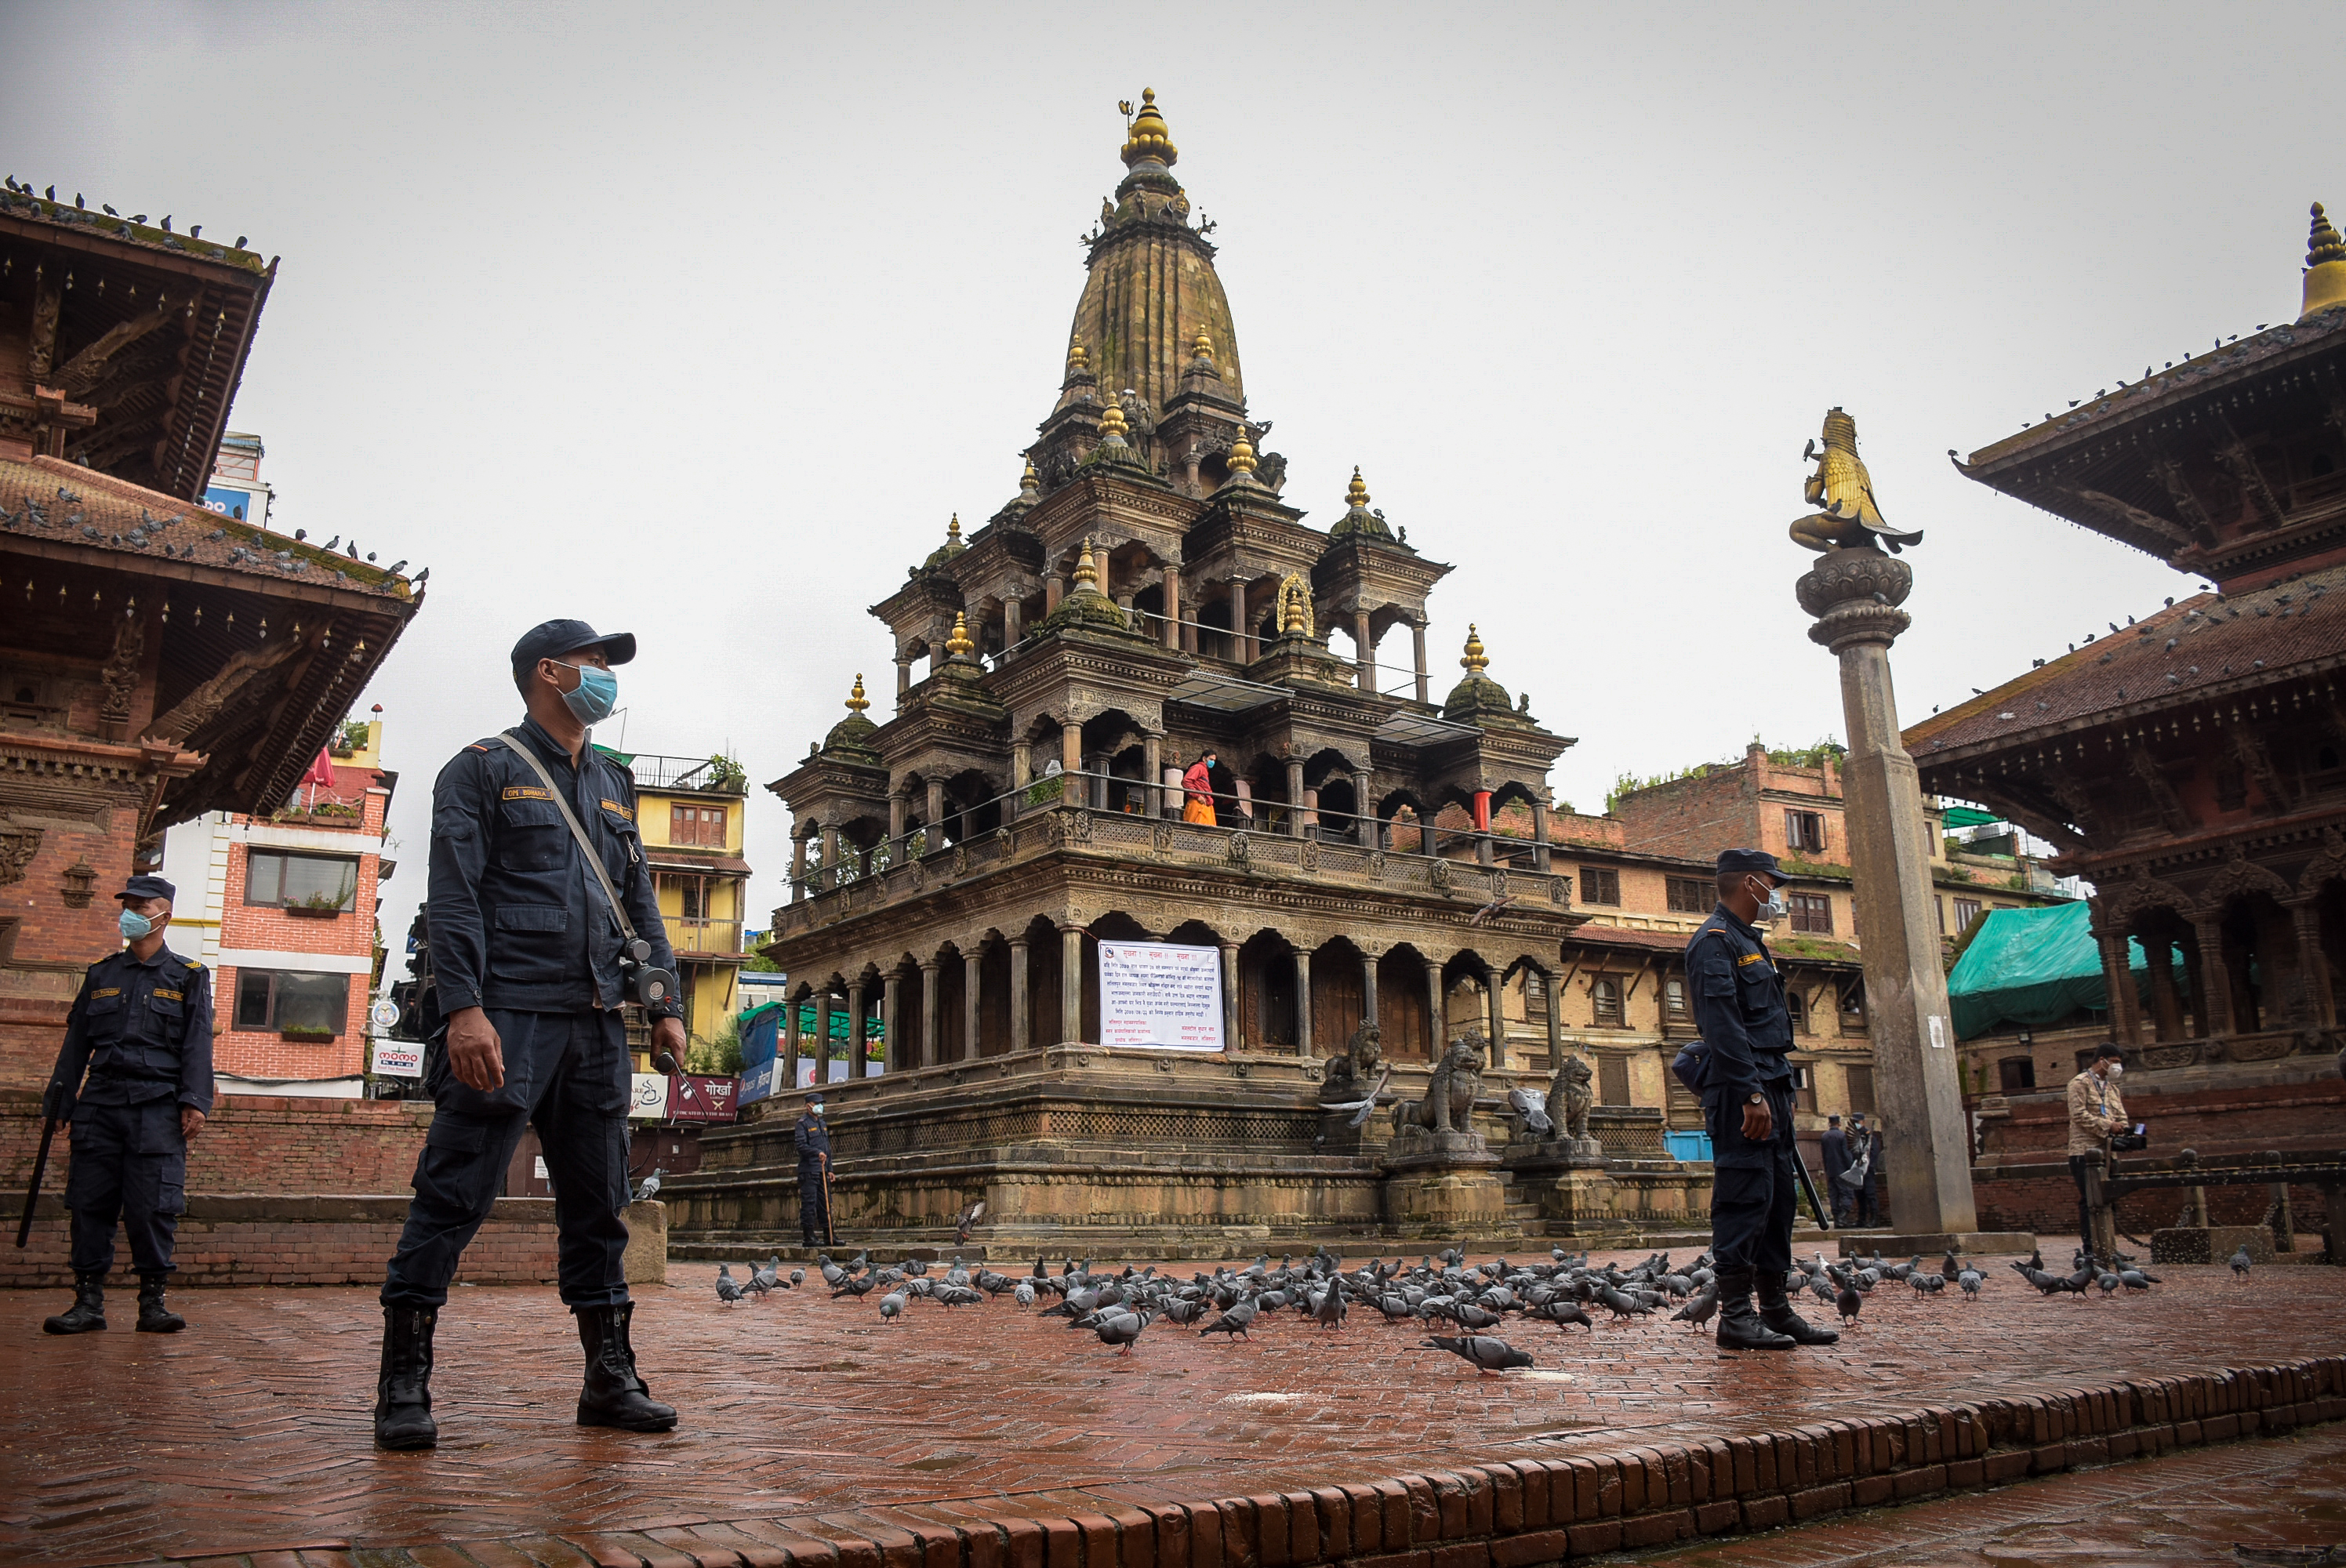 Security personnel stand guard at the  premises of Krishna Mandir, during  Krishna Janmashtami, at Patan Durbar Square, in Lalitpur, Tuesday, August 11, 2020. Due to the ongoing coronavirus pandemic this year, entry inside the temple has been restricted. Photo: Naresh Shrestha/THT